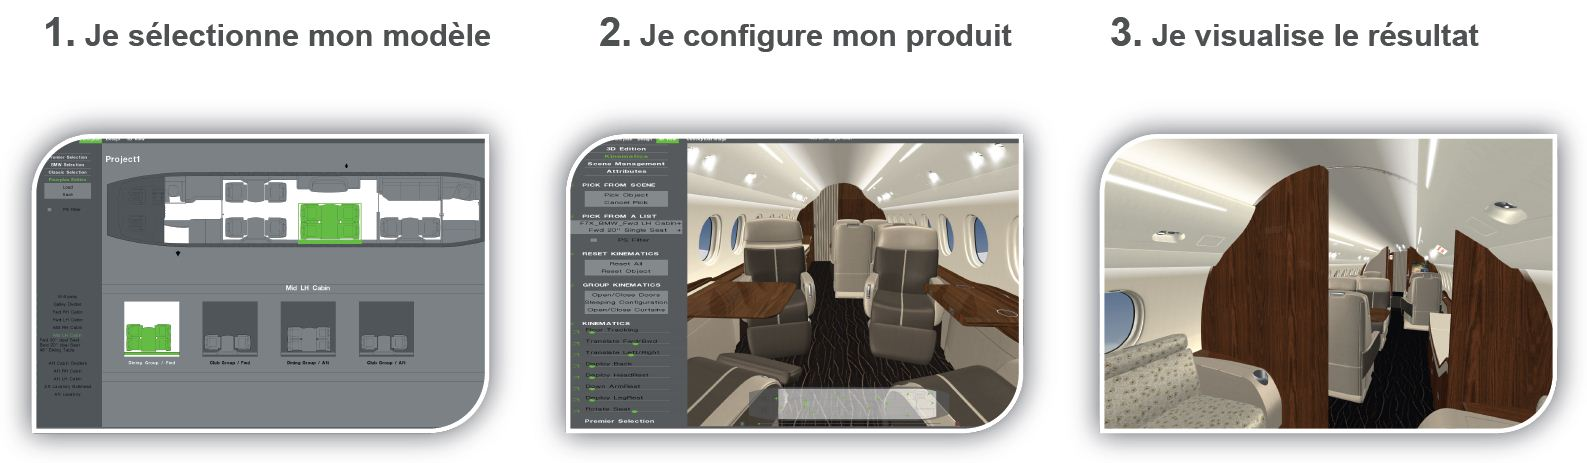 Gestion 3 étapes 3D Product Configurator